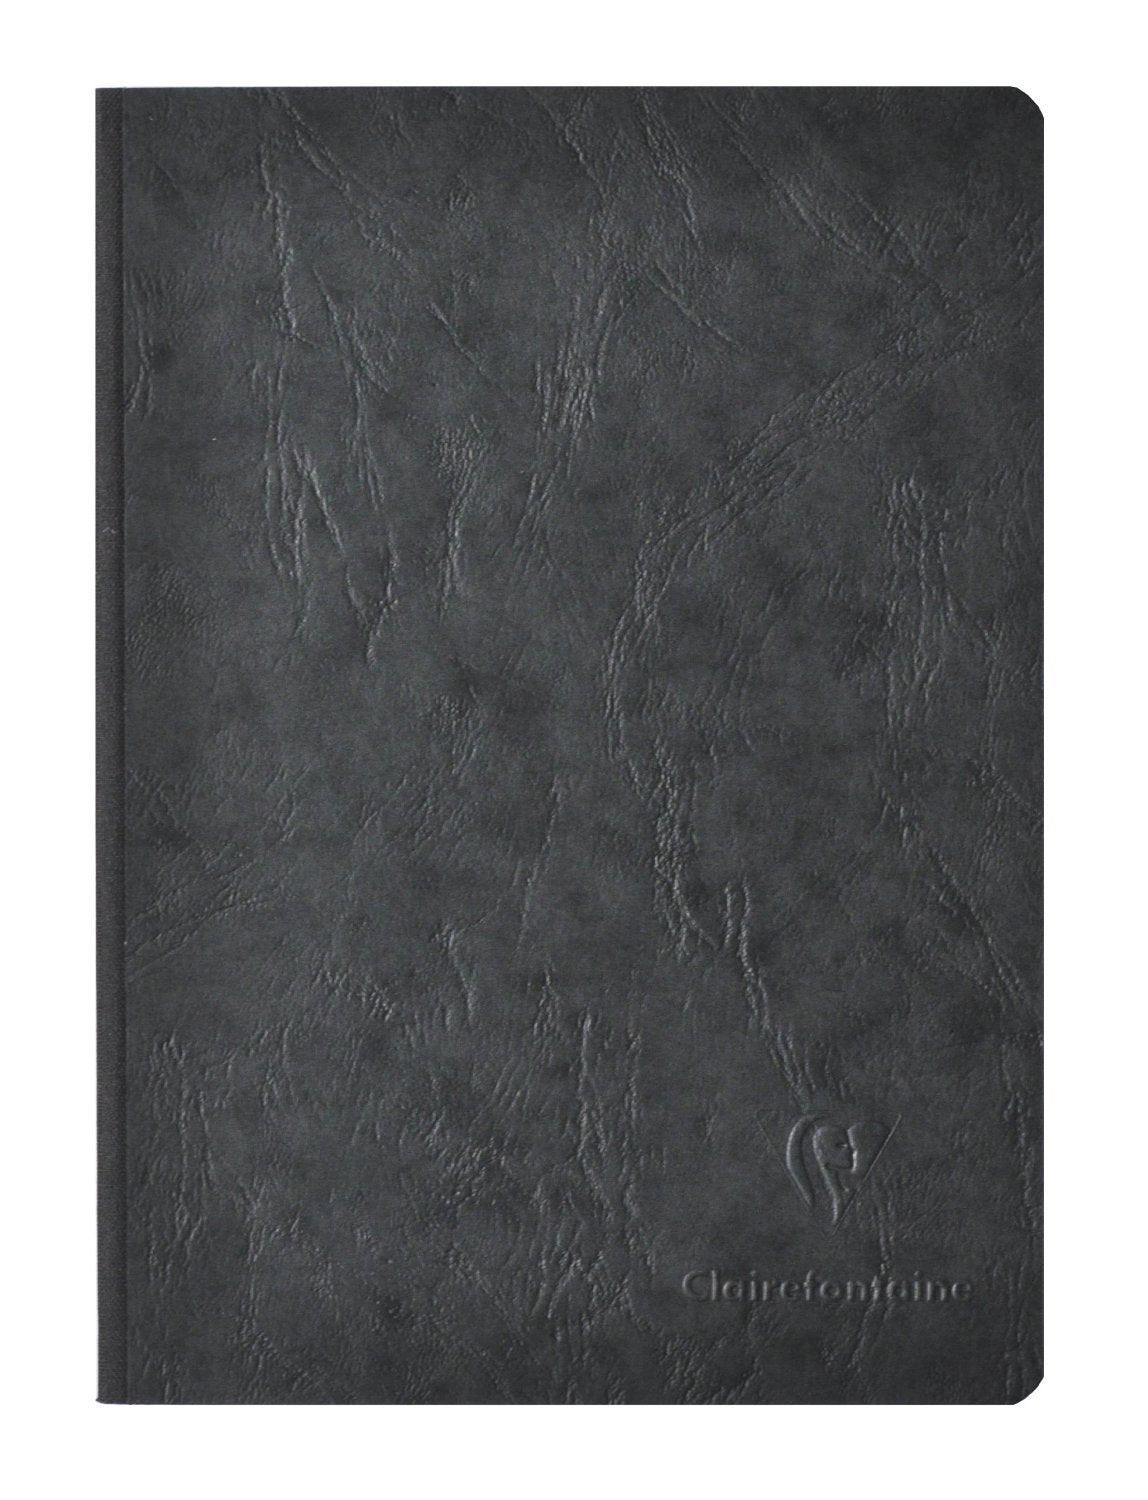 Clairefontaine Basic Notebooks Side Clothbound w/Elastic Closure 8 ¼ x 11 ¾ Lined w/margin Black 96 sheets